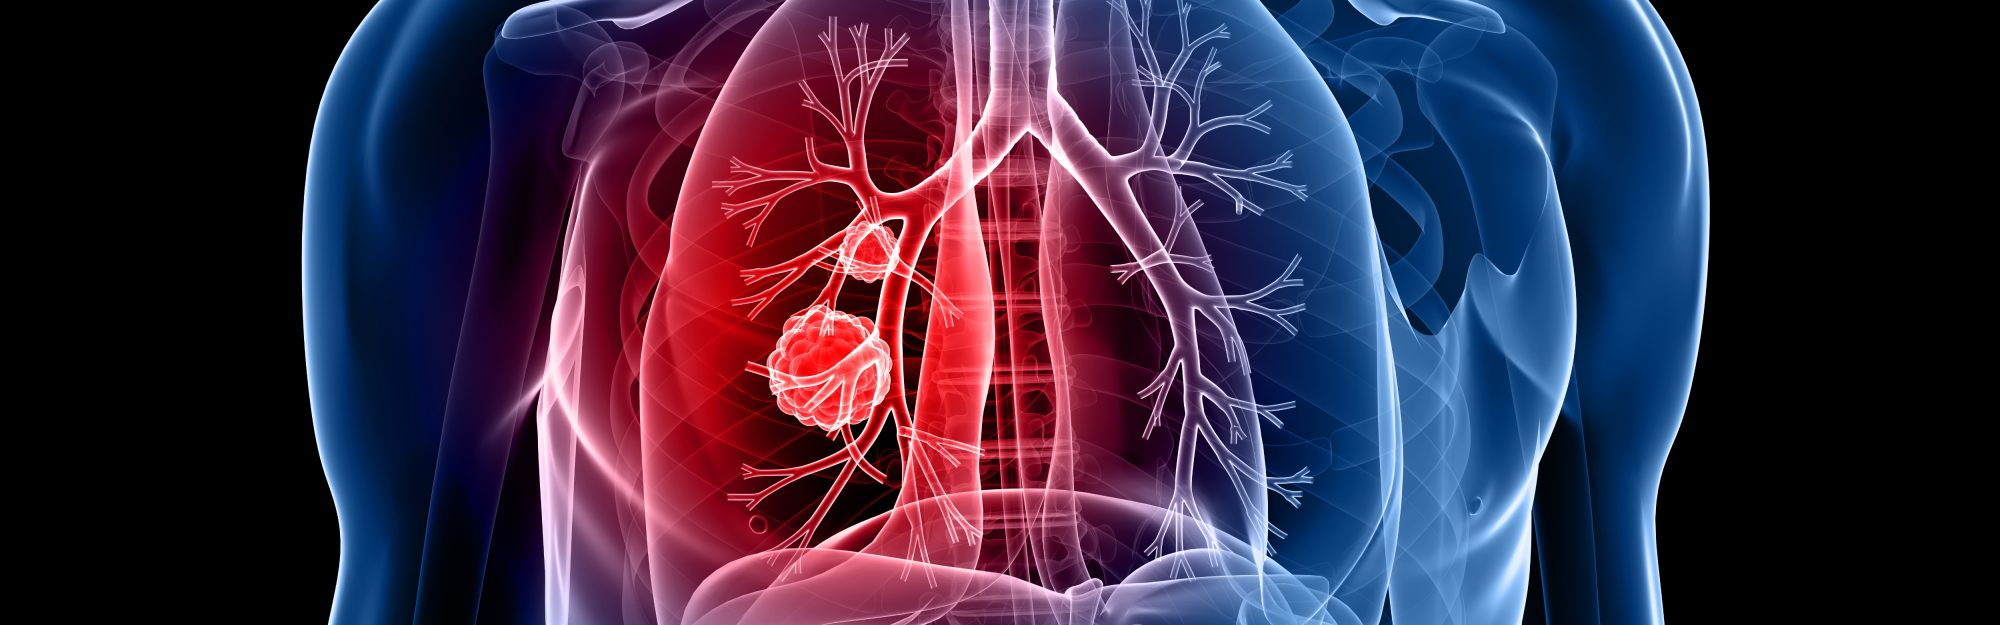 Boston Lung Cancer Study